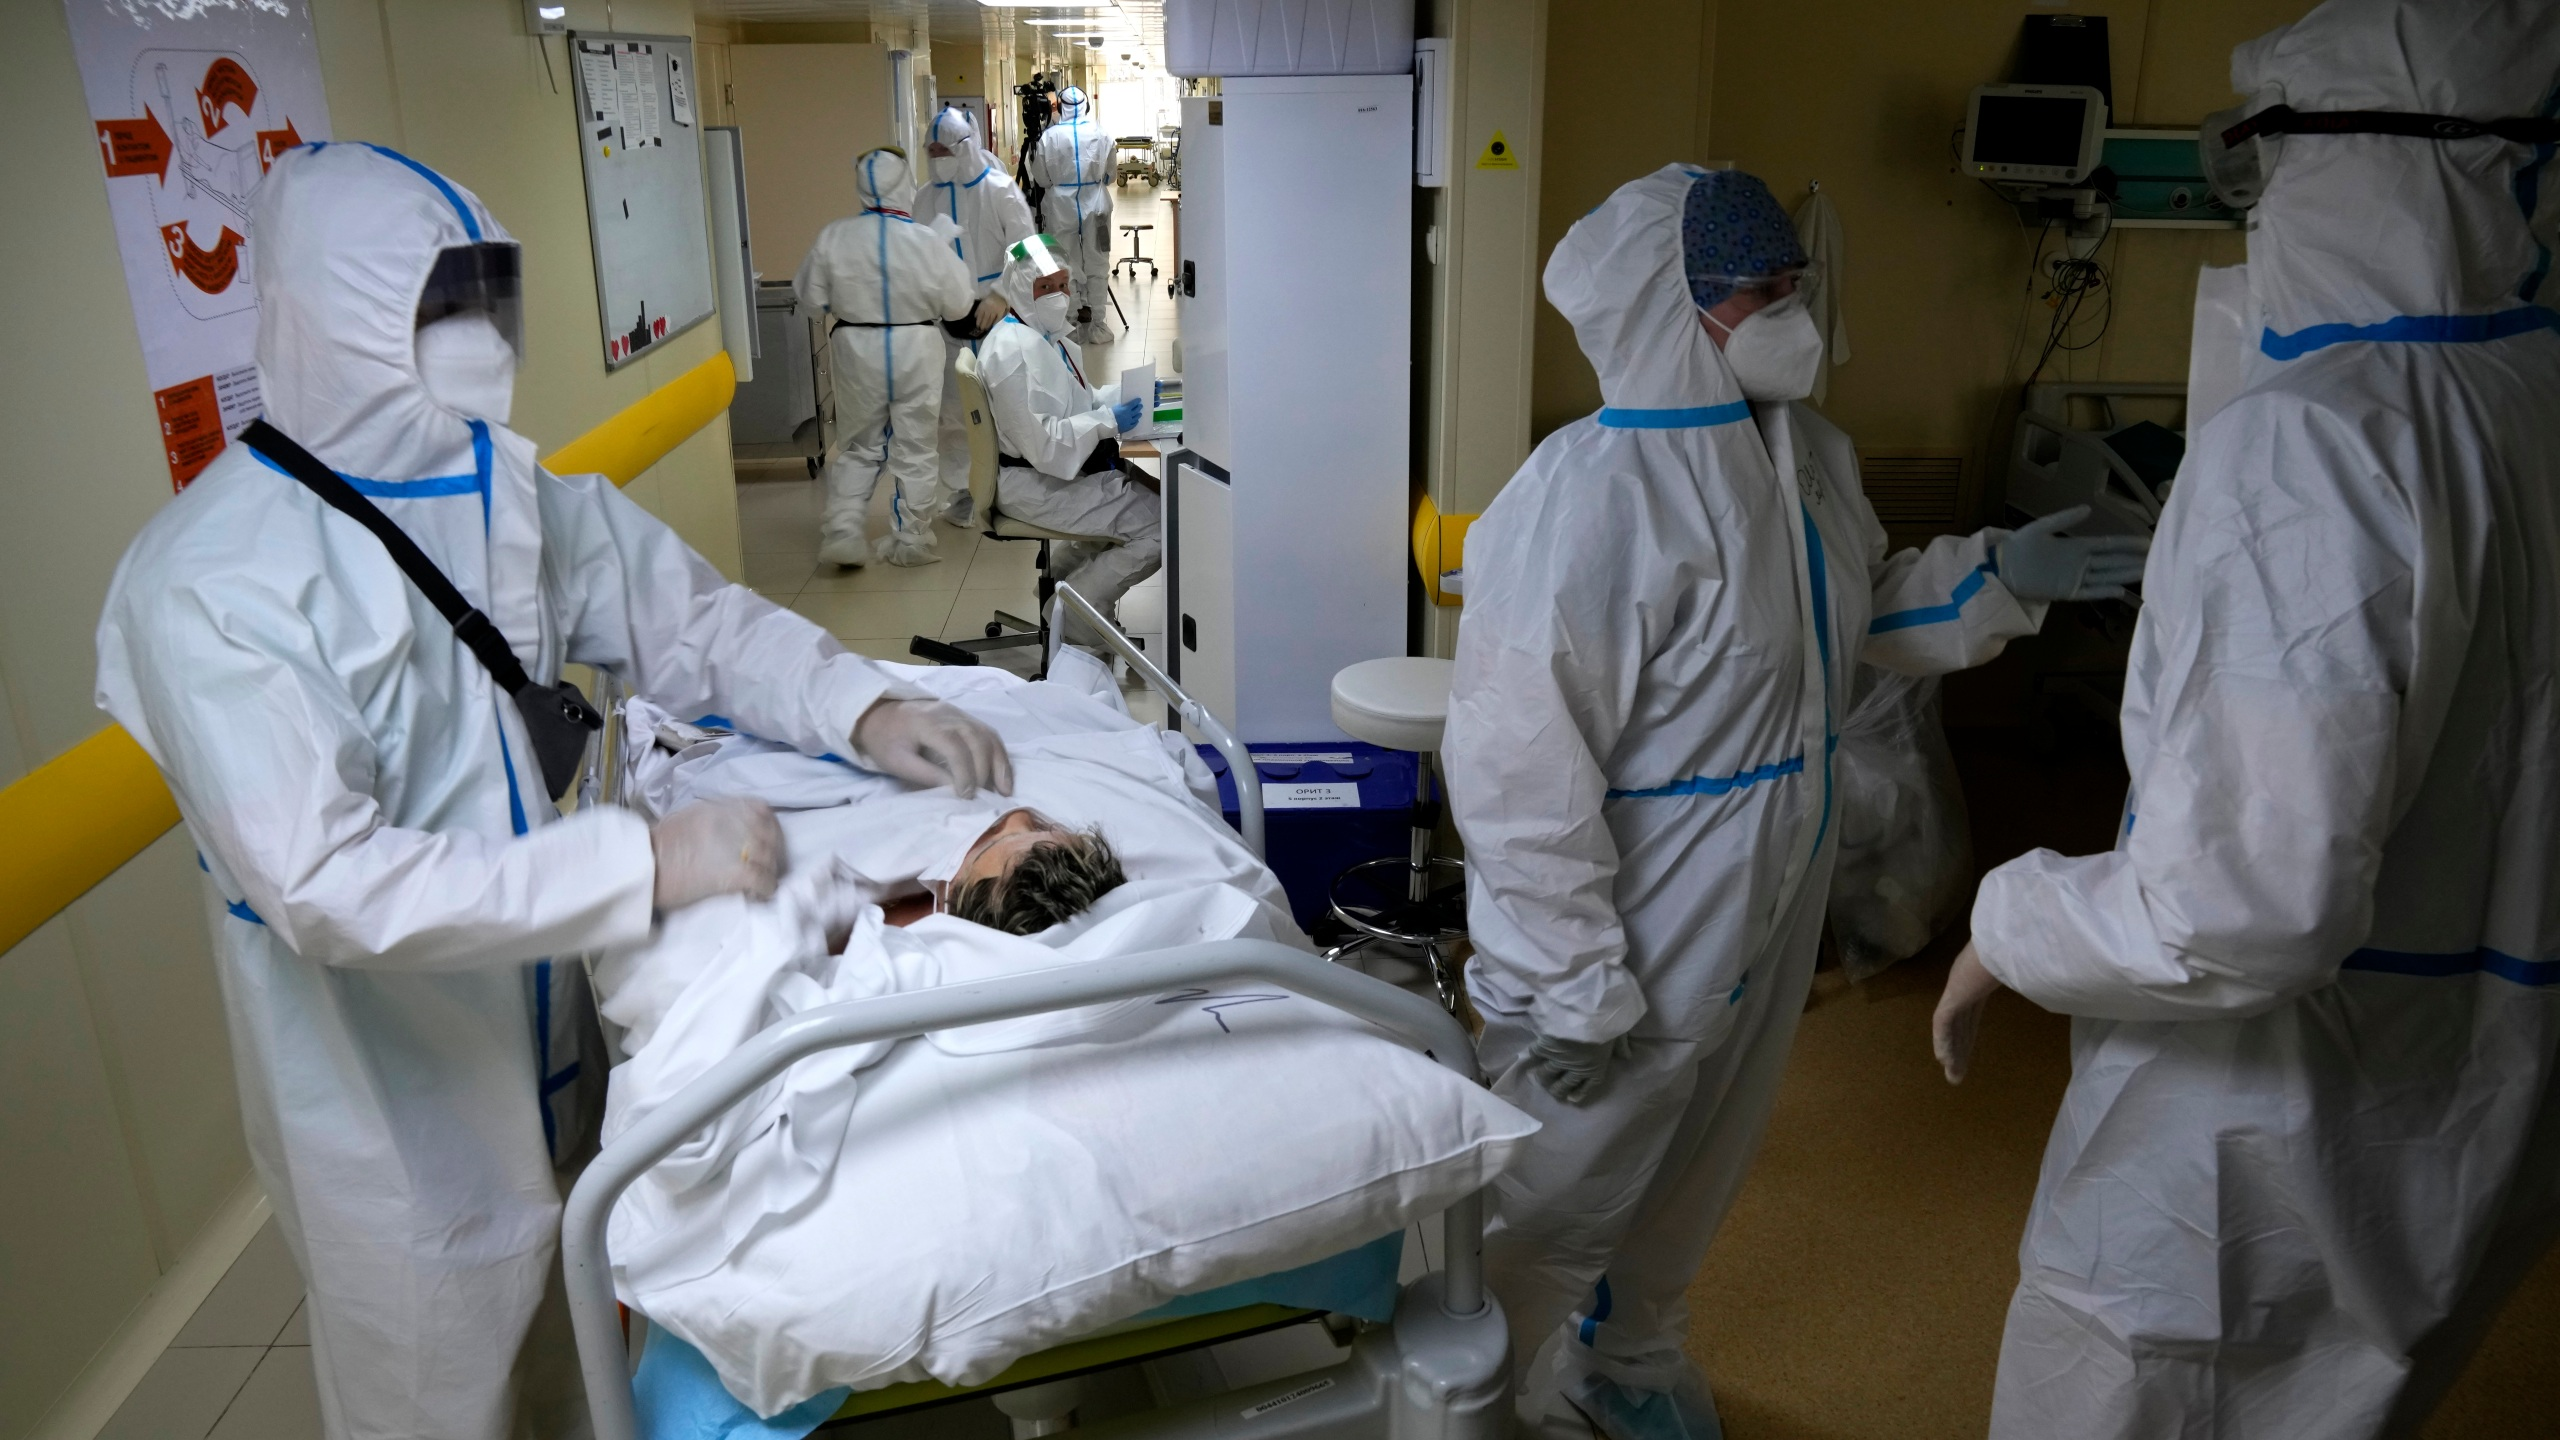 Medics wearing special suits to protect against coronavirus prepare to move a patient with coronavirus at an ICU at the Moscow City Clinical Hospital 52, in Moscow, Russia on Oct. 19, 2021. (AP Photo/Alexander Zemlianichenko)